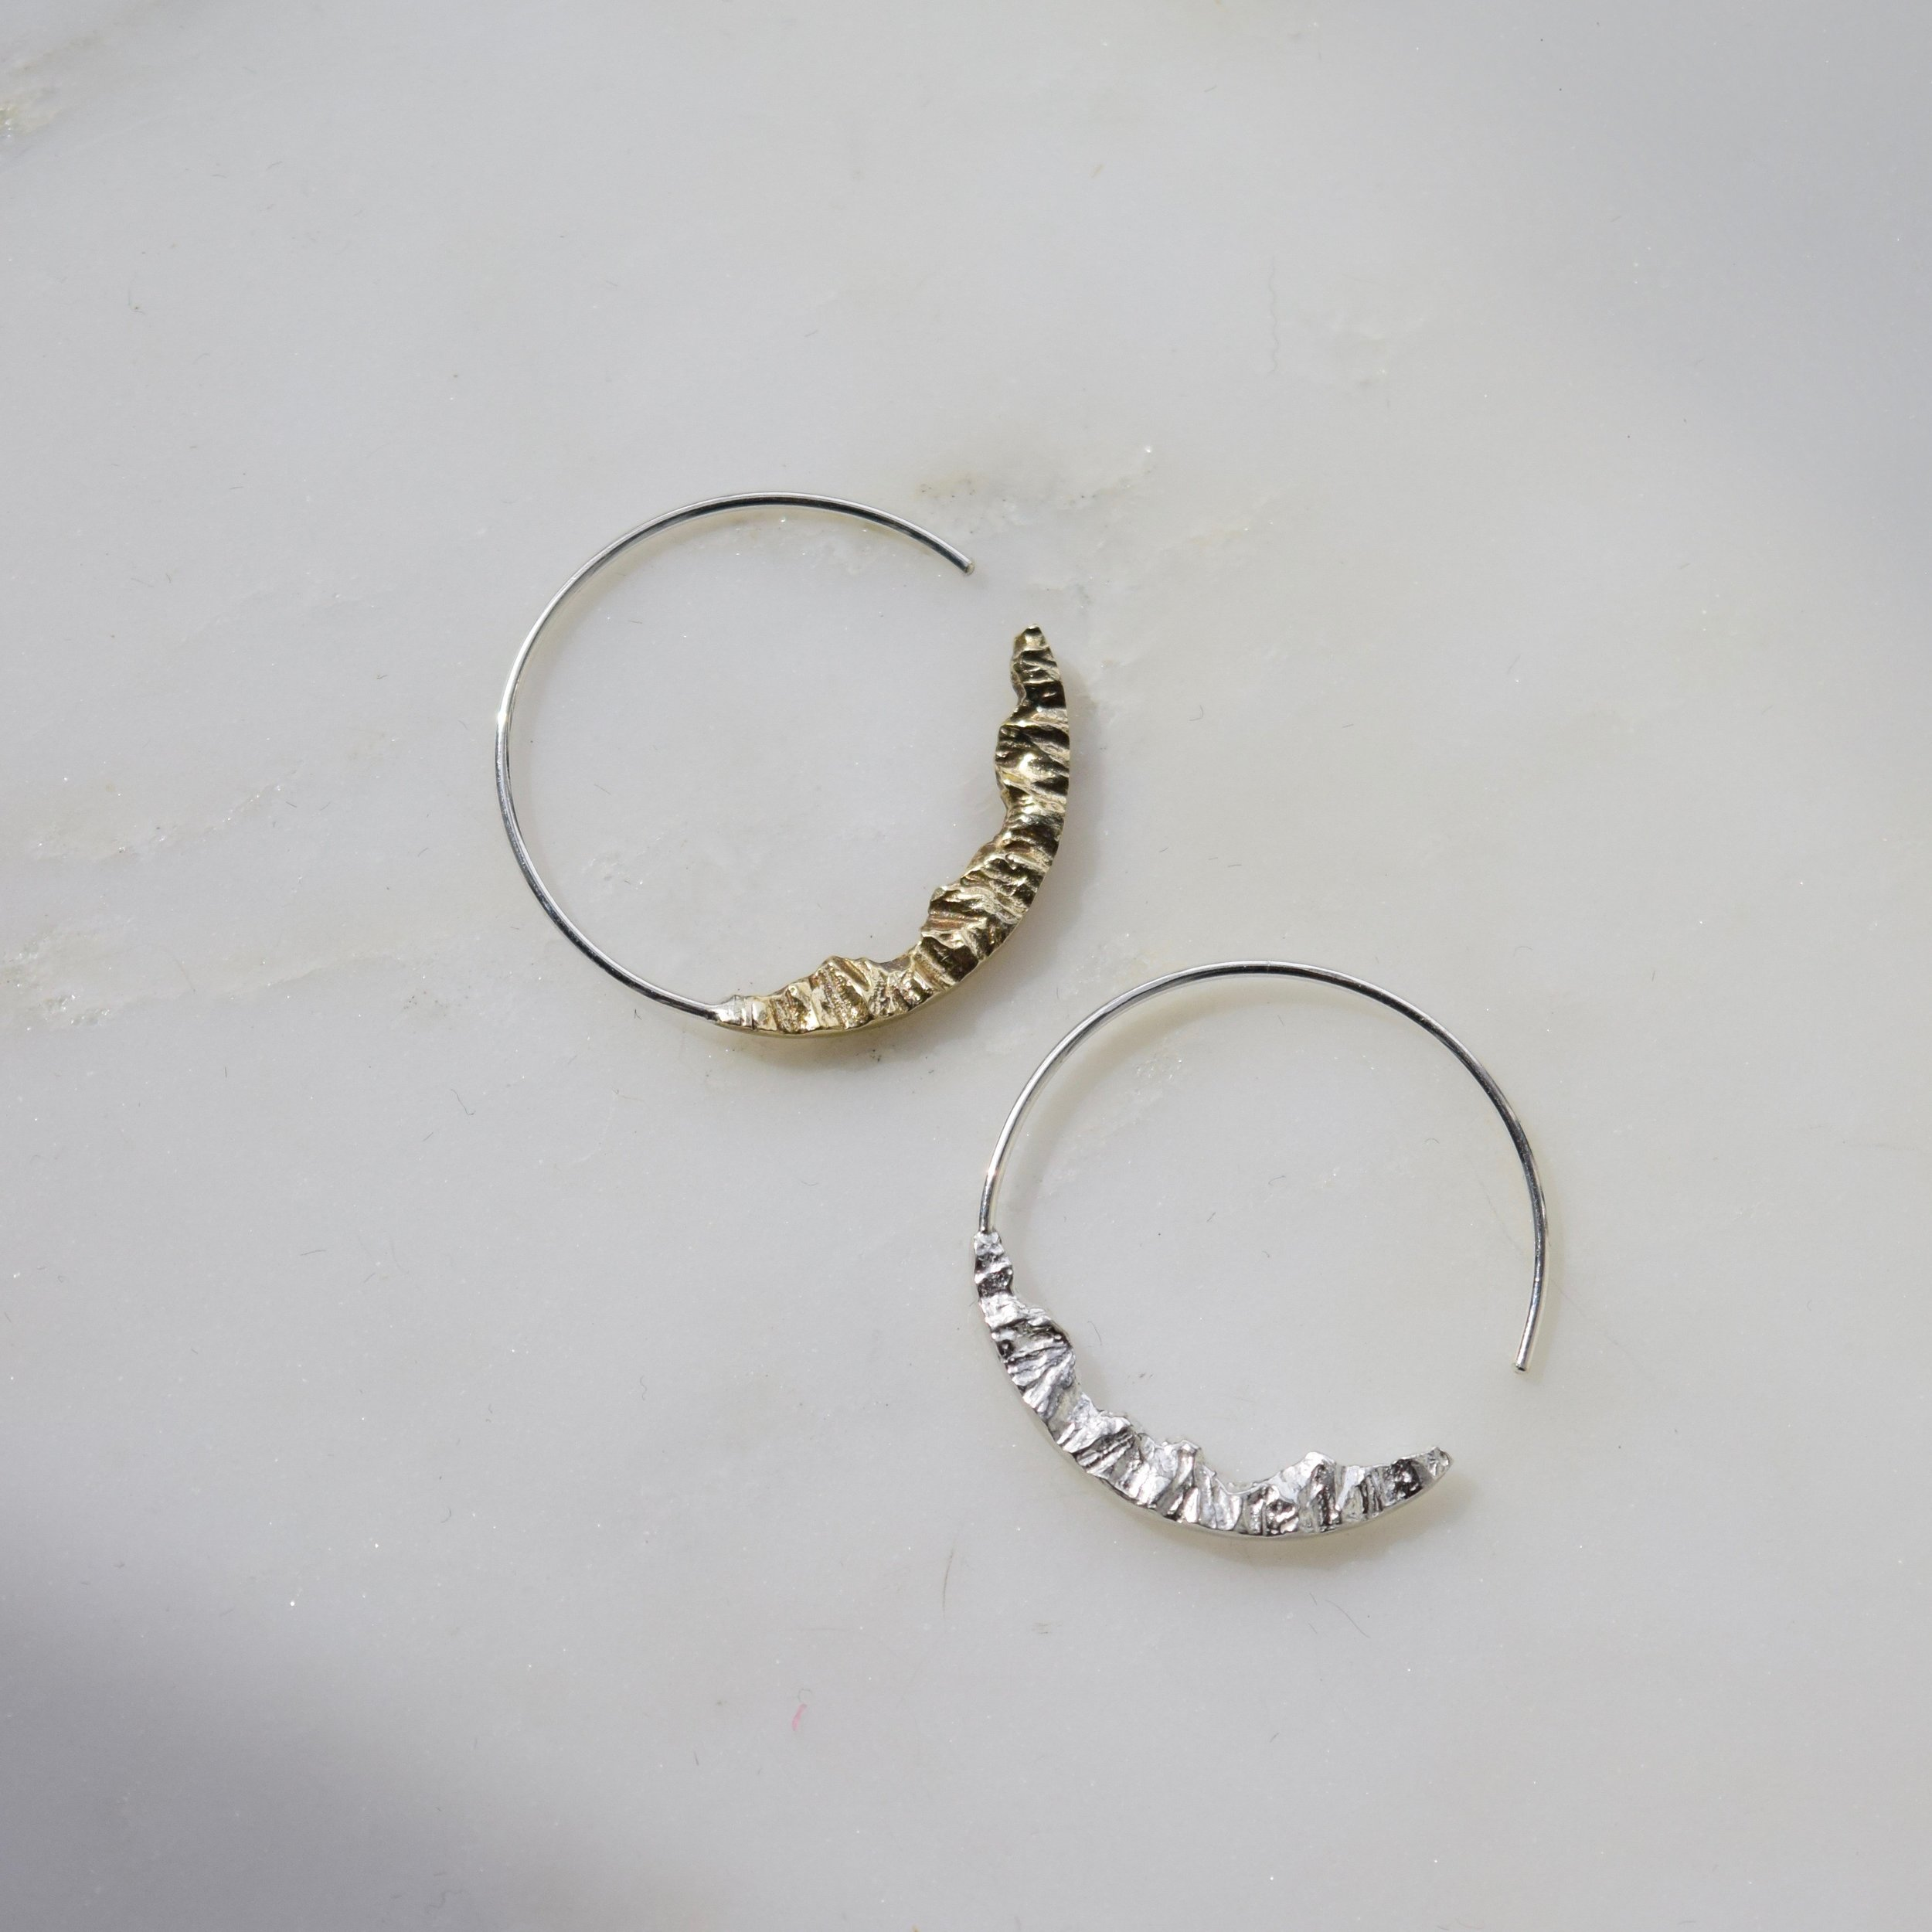 These mountain hoops for her adventurous spirit